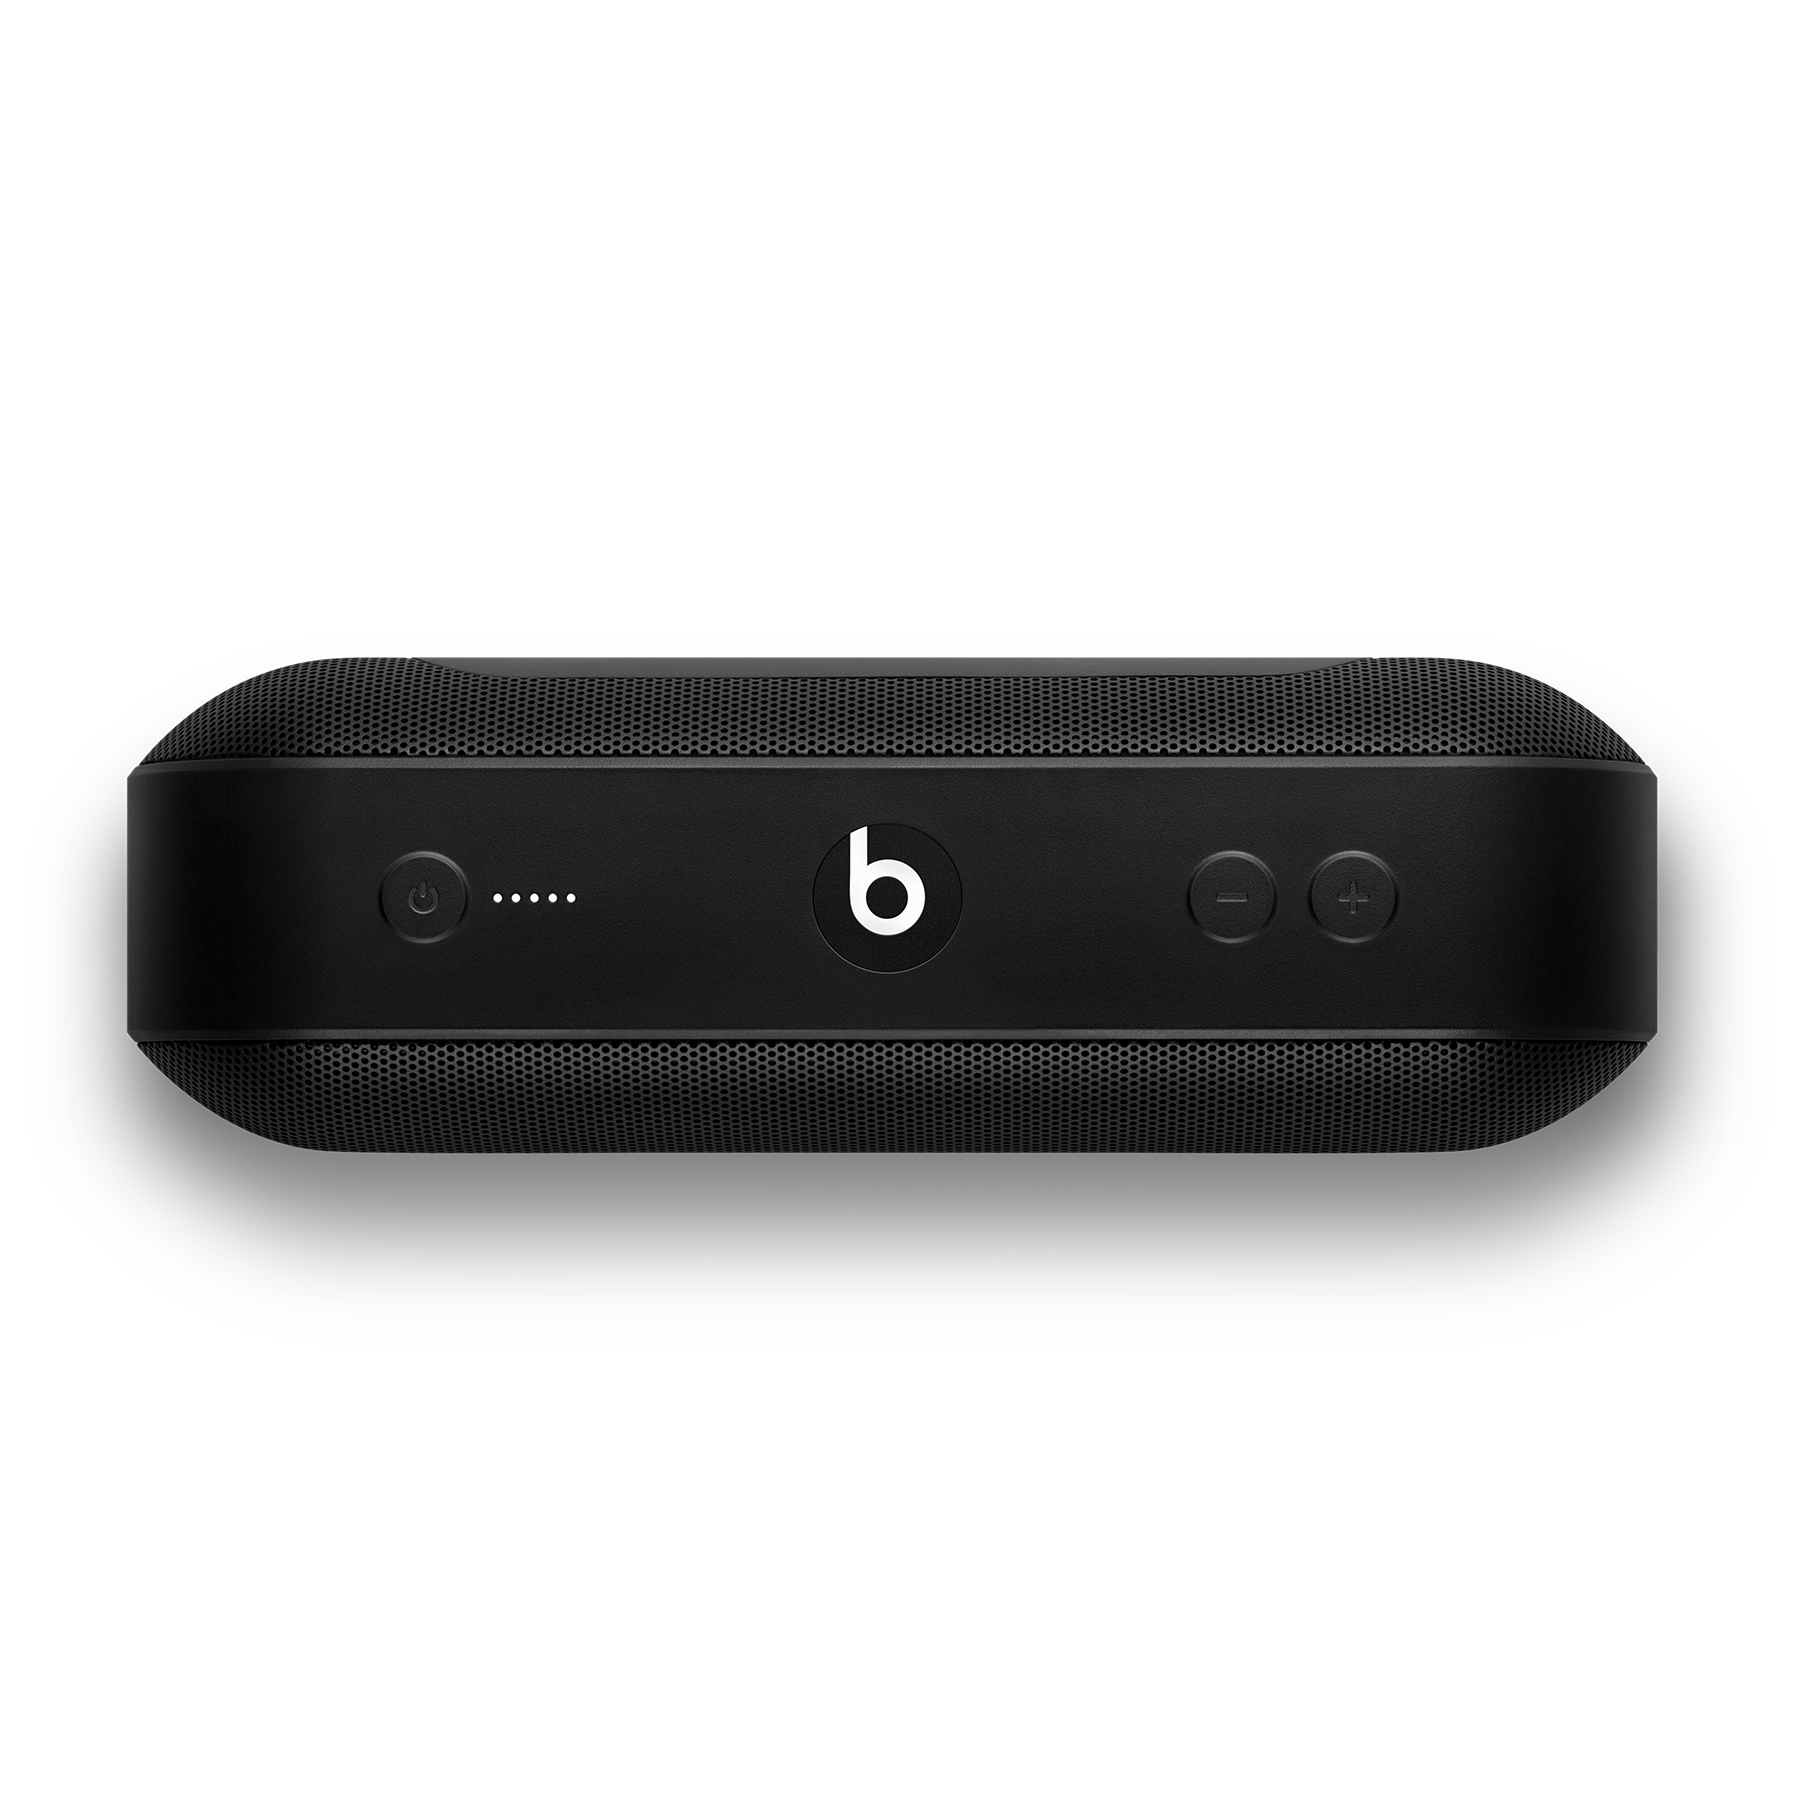 beats pill wireless bluetooth speaker beats by dre. Black Bedroom Furniture Sets. Home Design Ideas